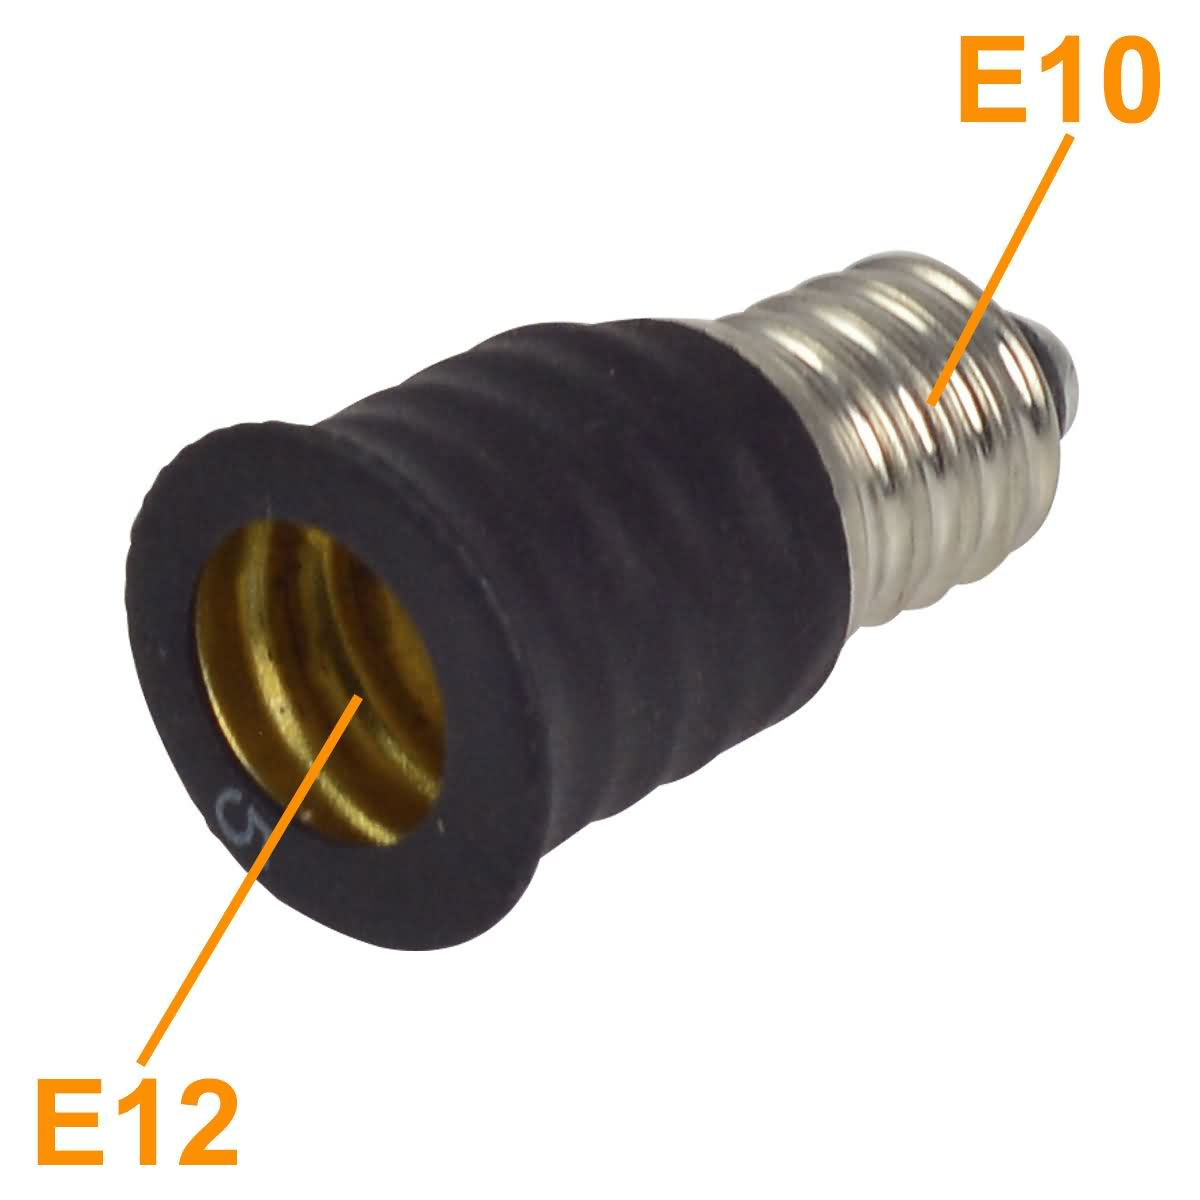 Mengsled mengs high quality lamp base adapter e to